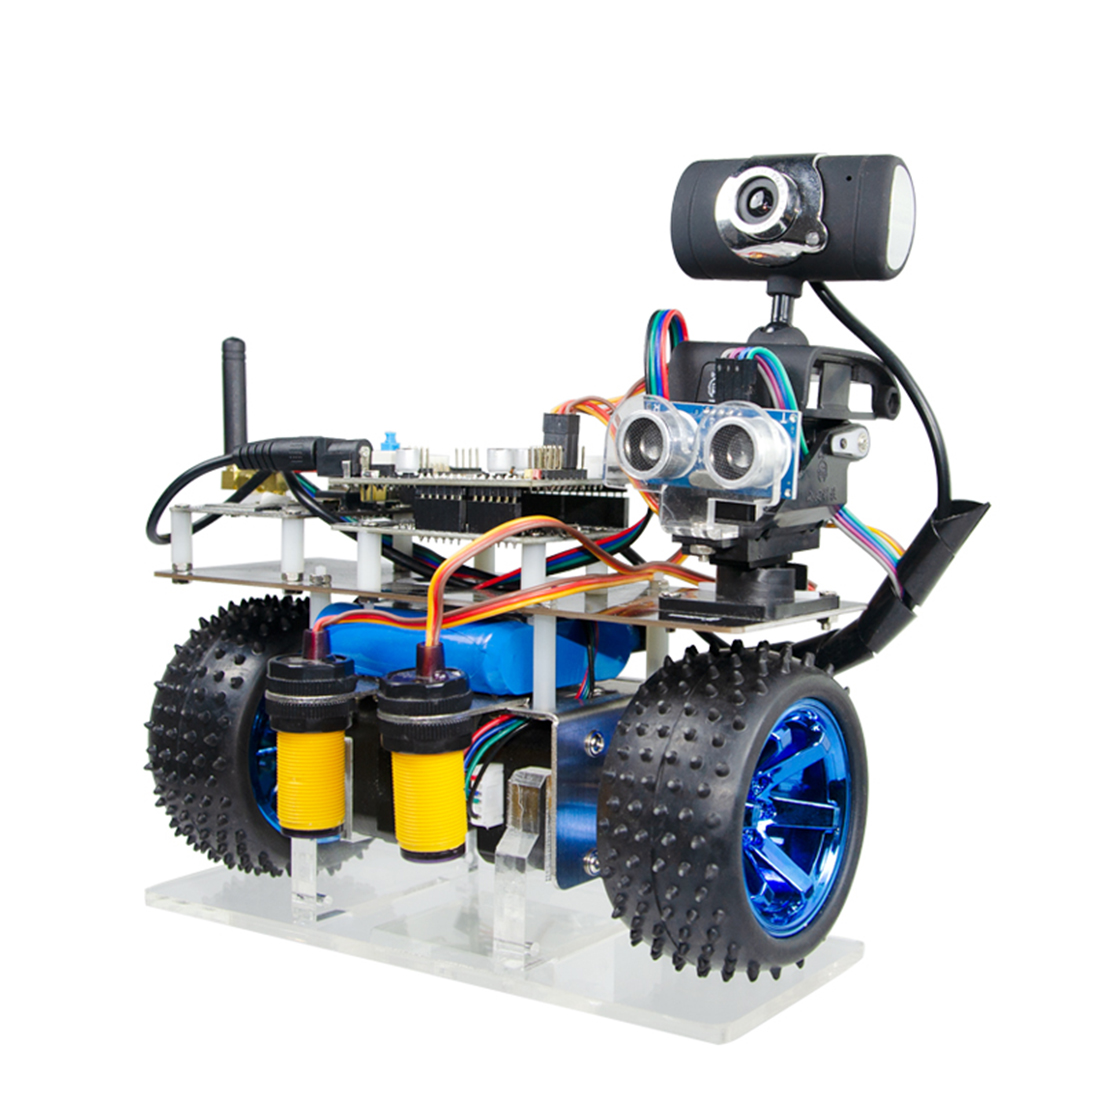 Programmable Intelligent Balance WiFi Video Robot Car Support iOS/Android APP PC RC for STM32- Patrol Obstacle Avoidance Version 1